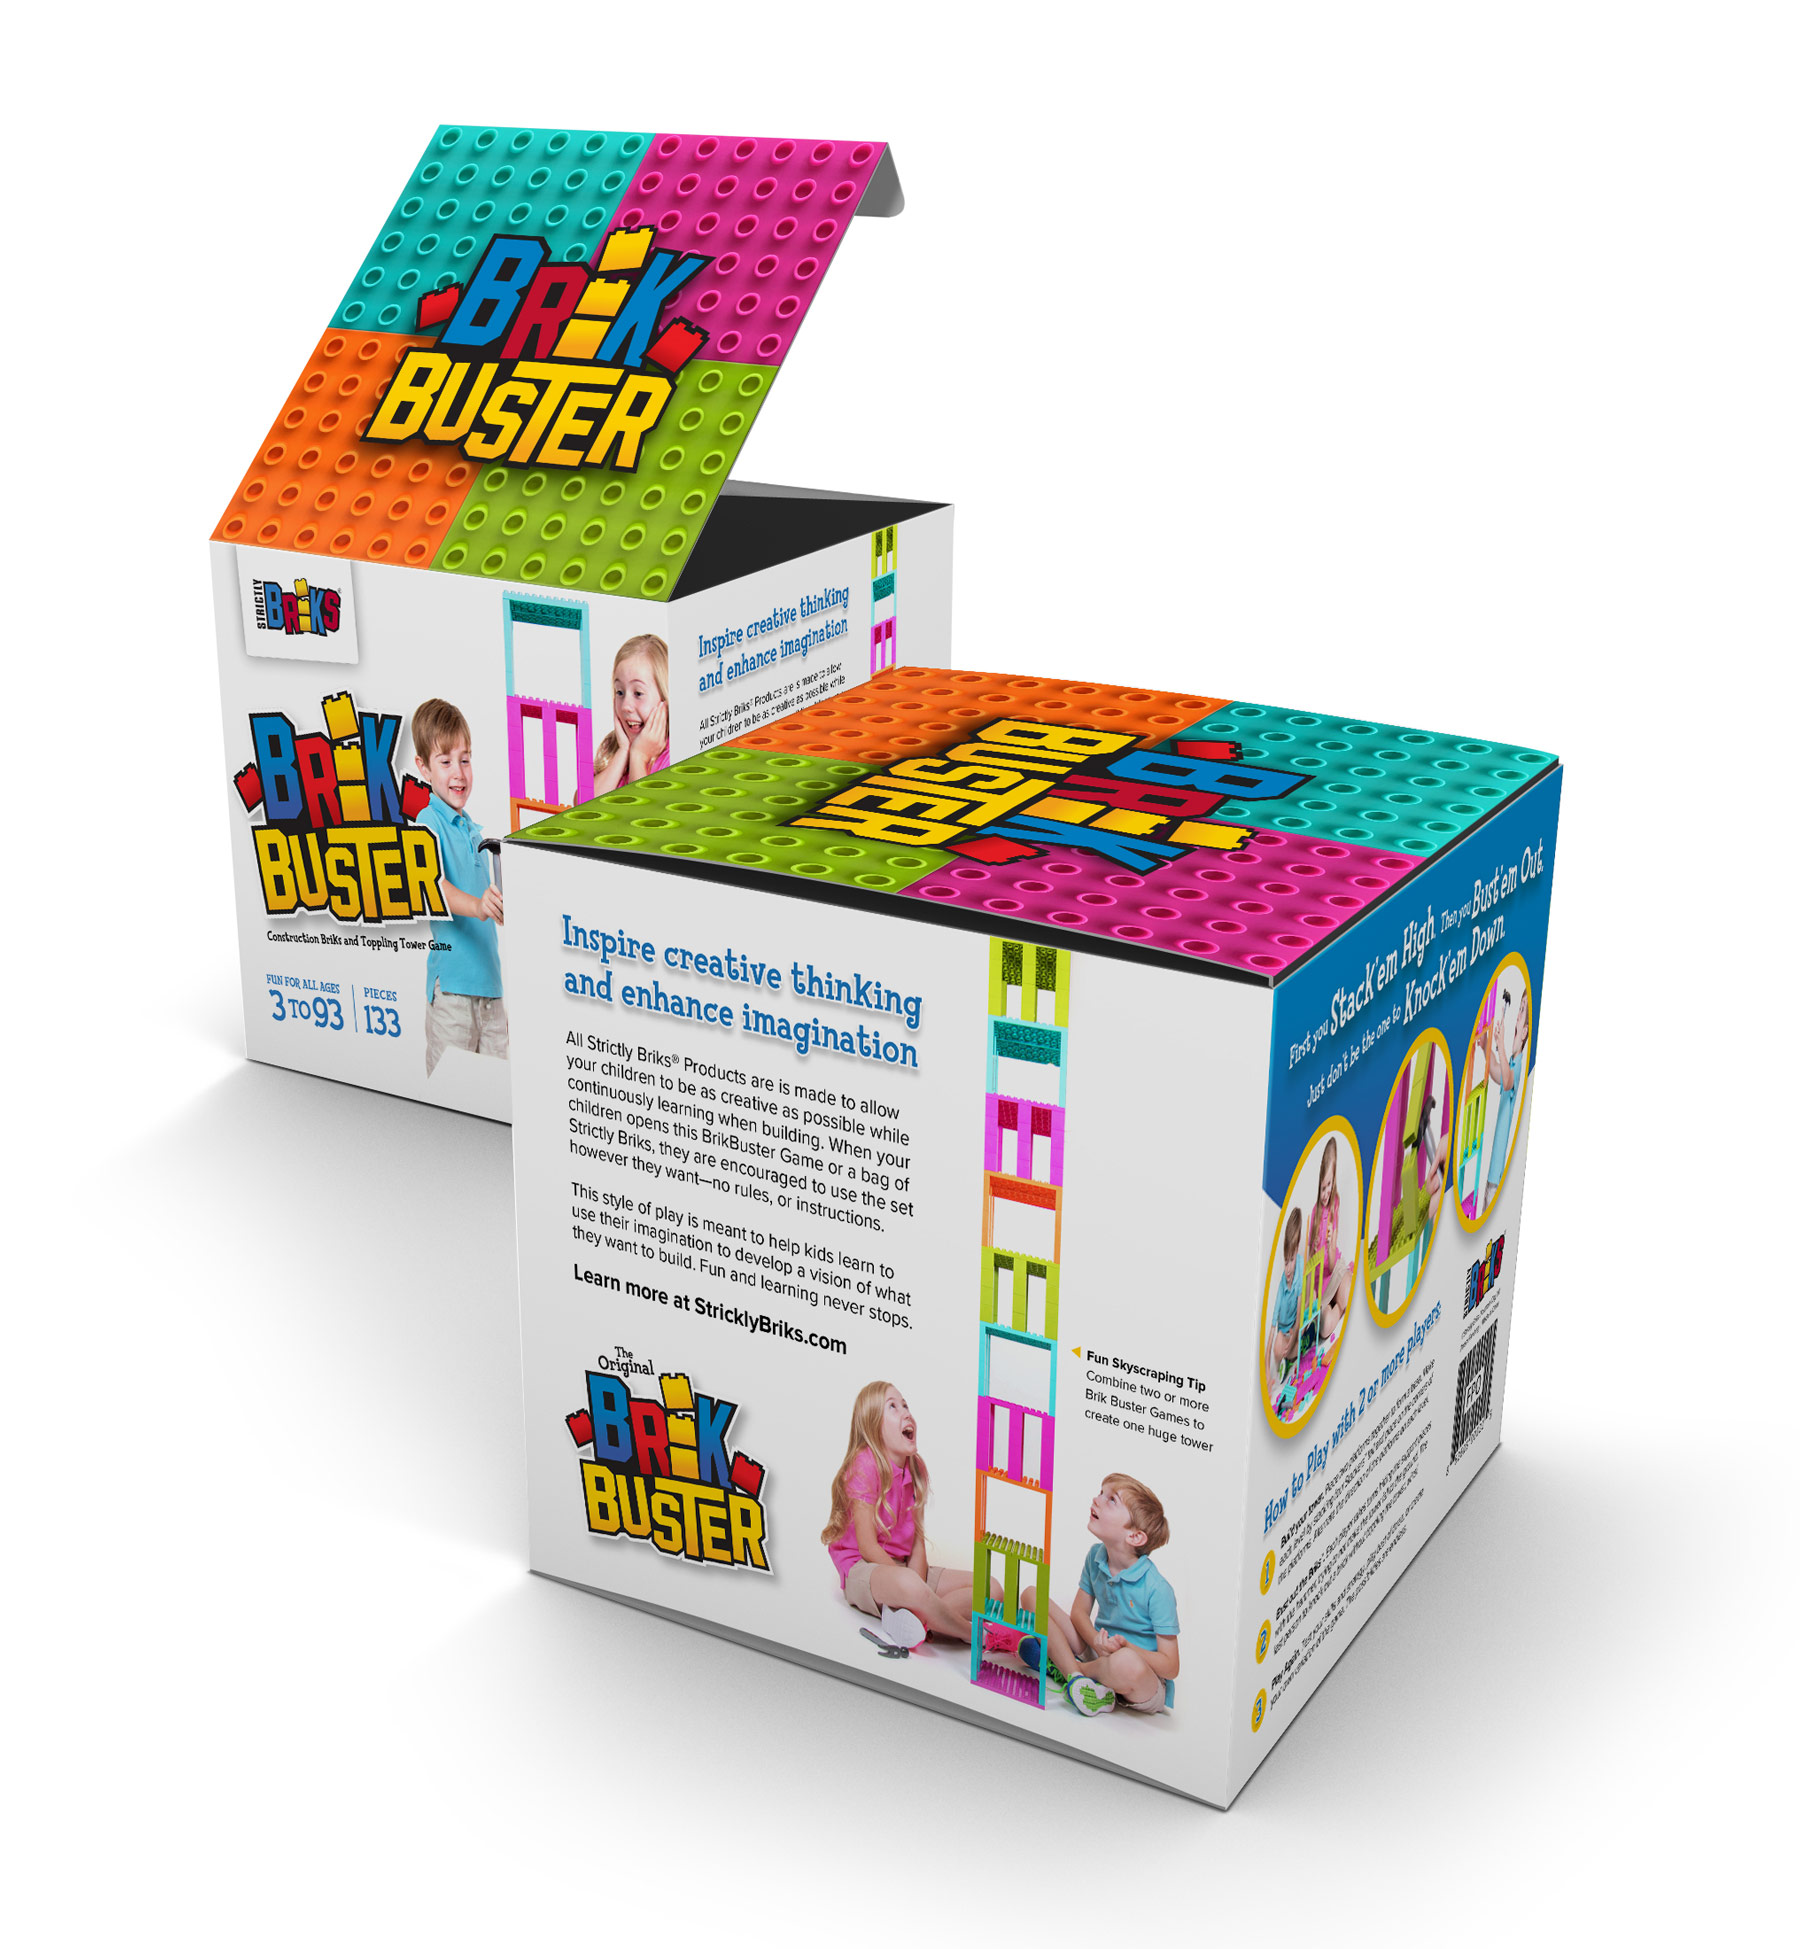 Strictly Briks Brik Buster product packaging